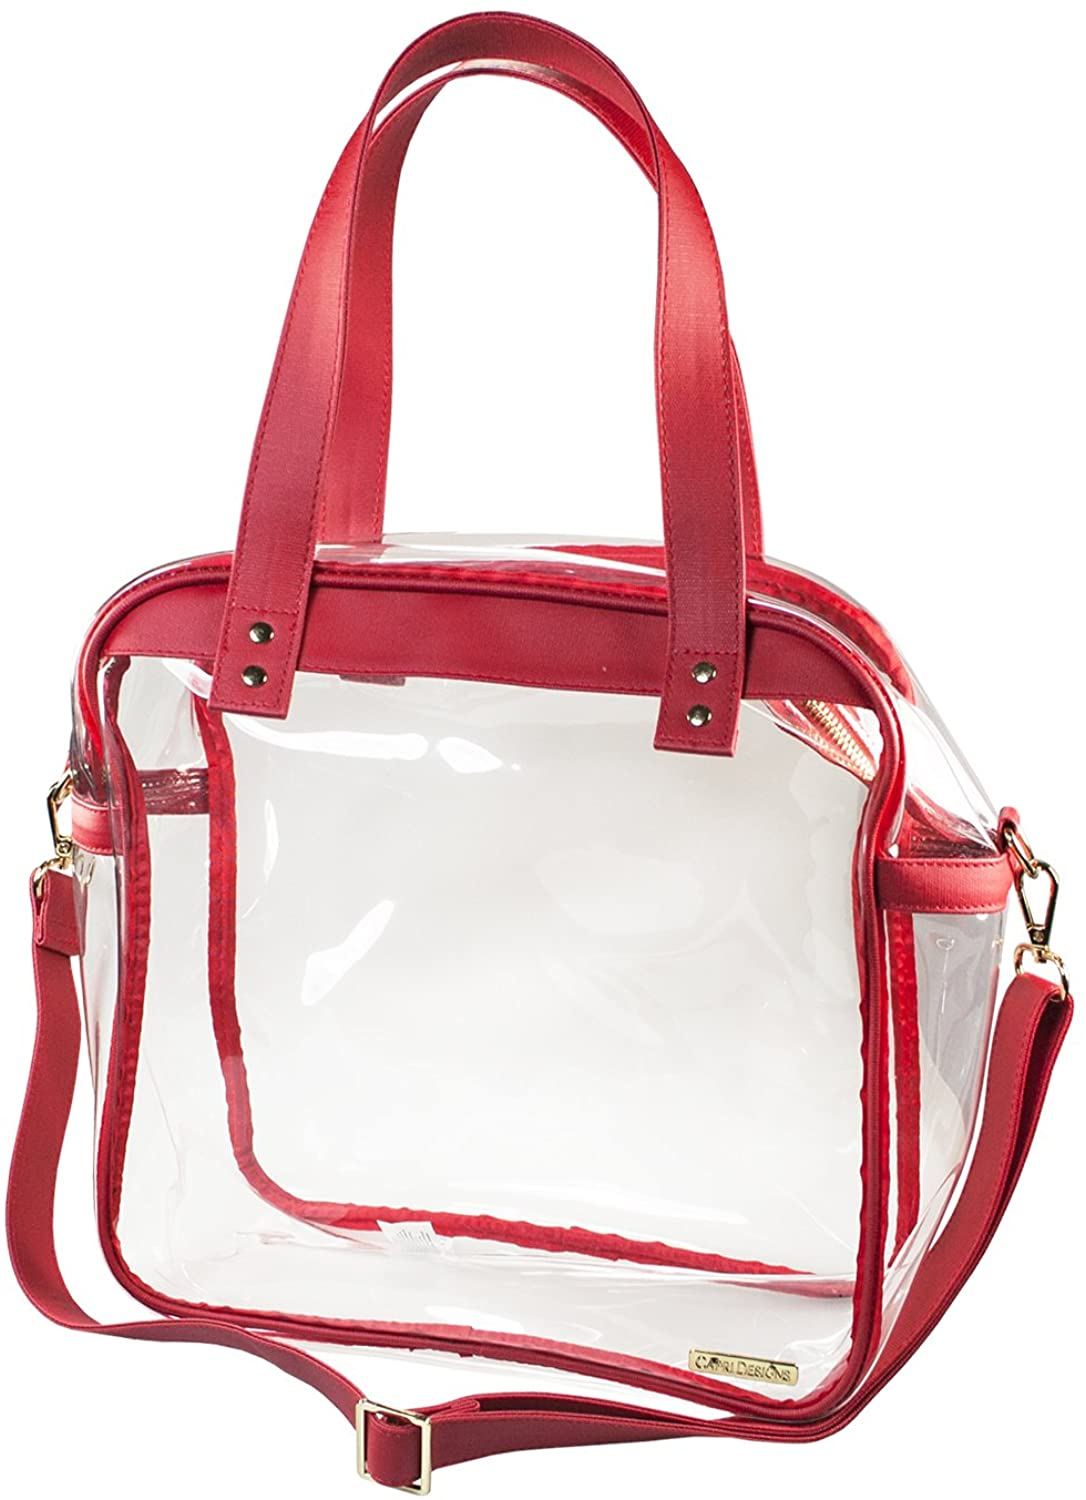 Capri Designs Clear Carryall Tote, Stadium Approved Transparent Purse for Women, Coated Cotton Canvas, 12x12x6 Inches